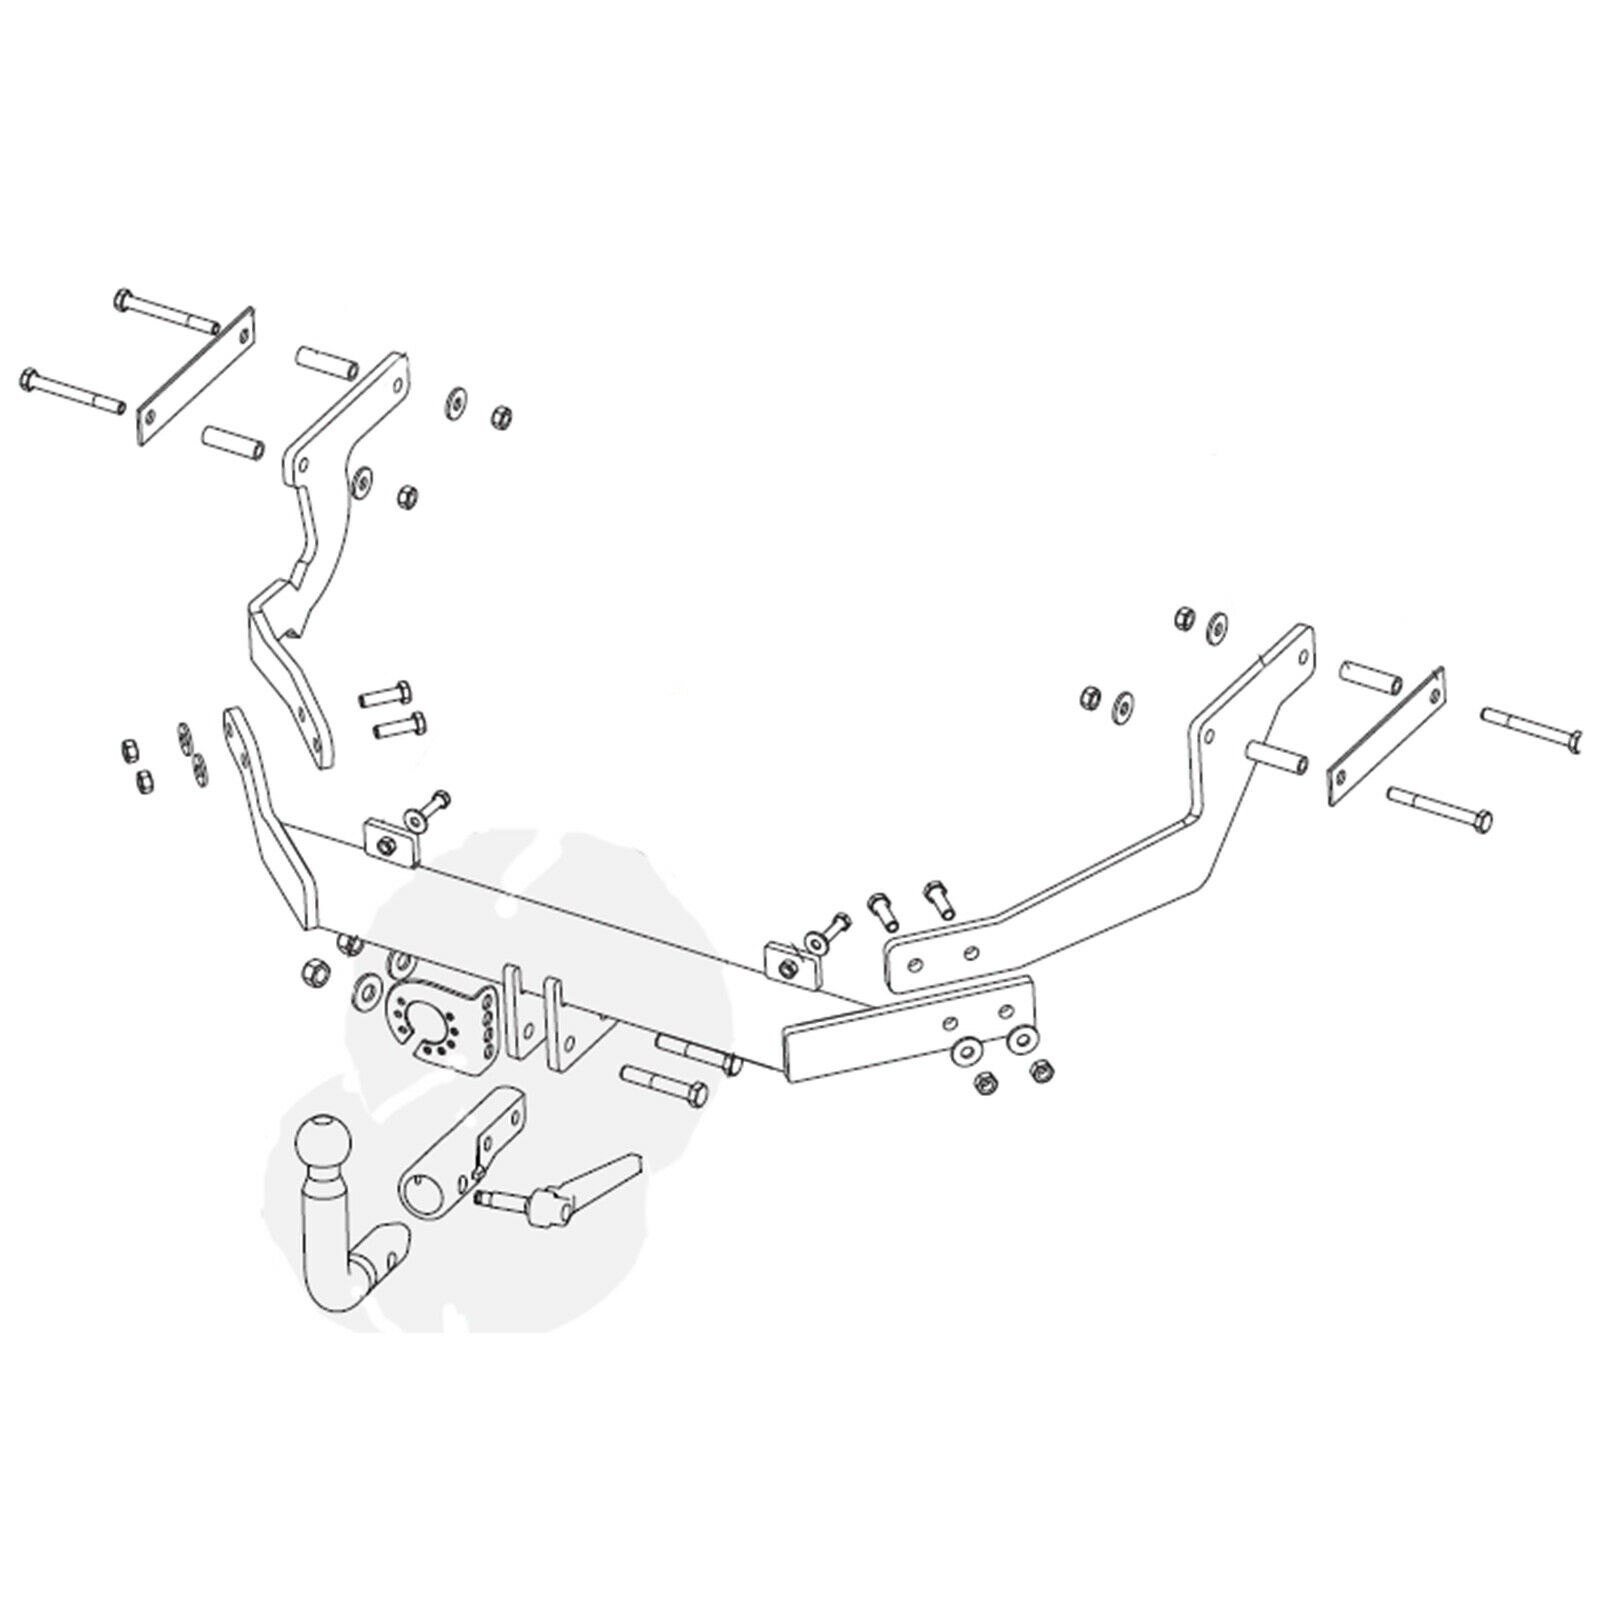 Diagram Wiring Diagram For Citroen Xsara Picasso Towbar